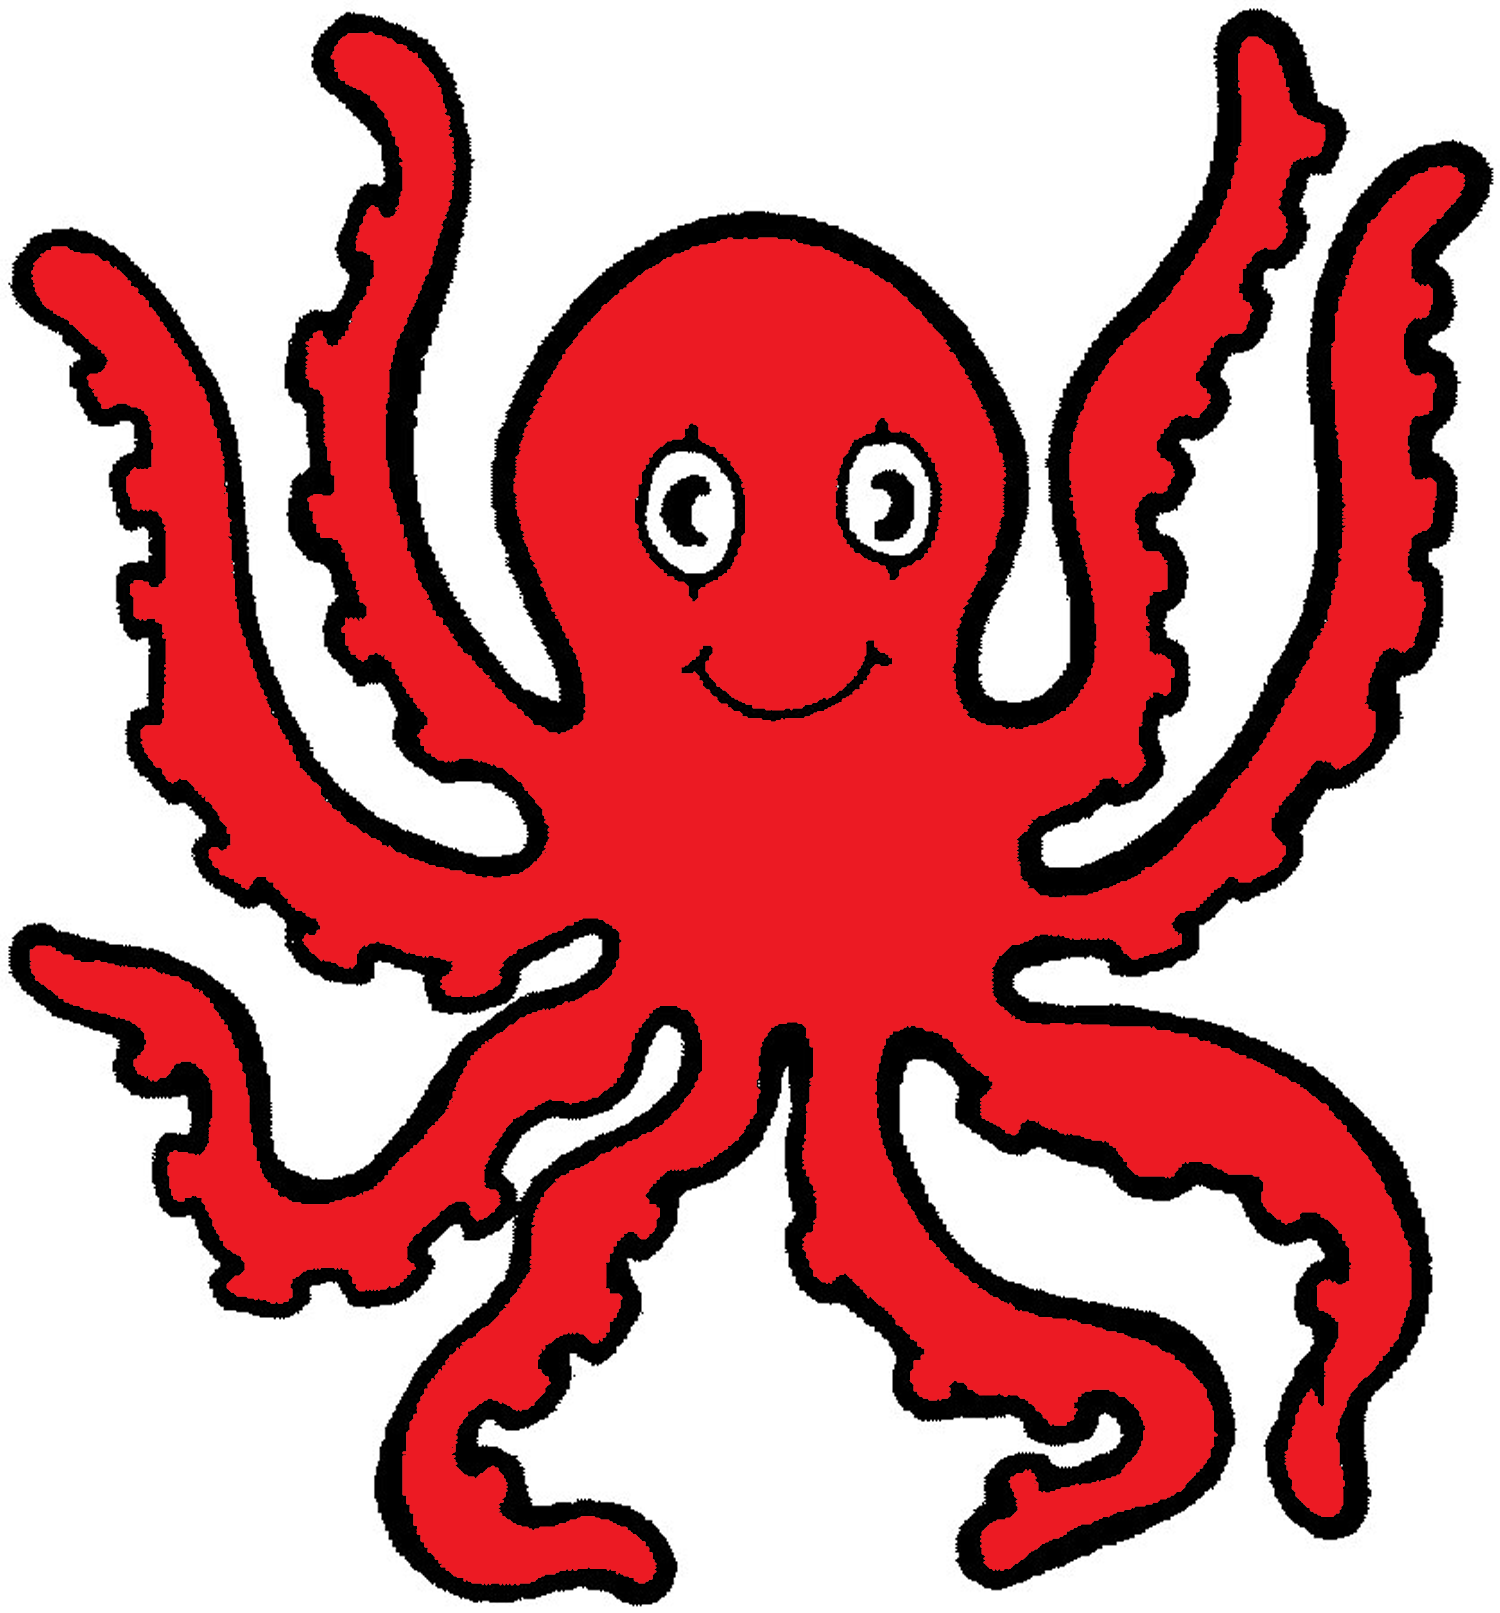 Moving clipart octopus #10